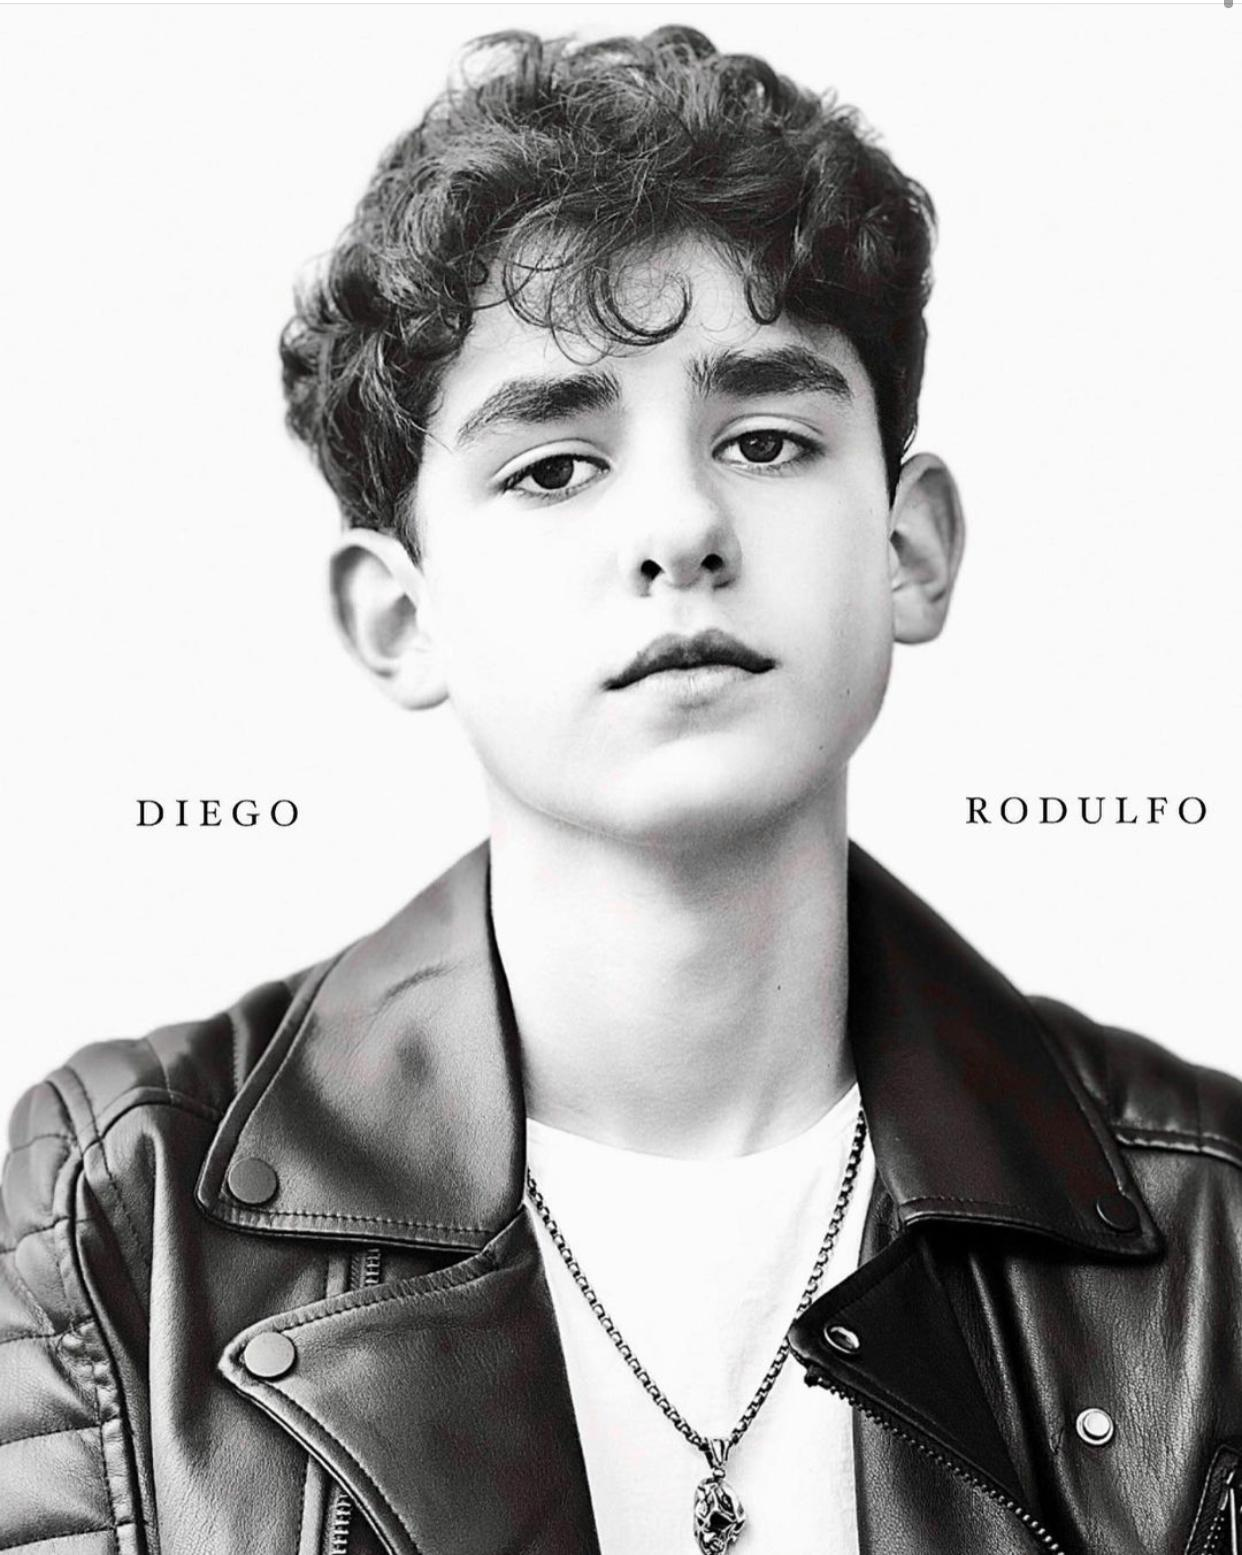 Get Personalized Video Messages from Diego Rodulfo on Celevideos